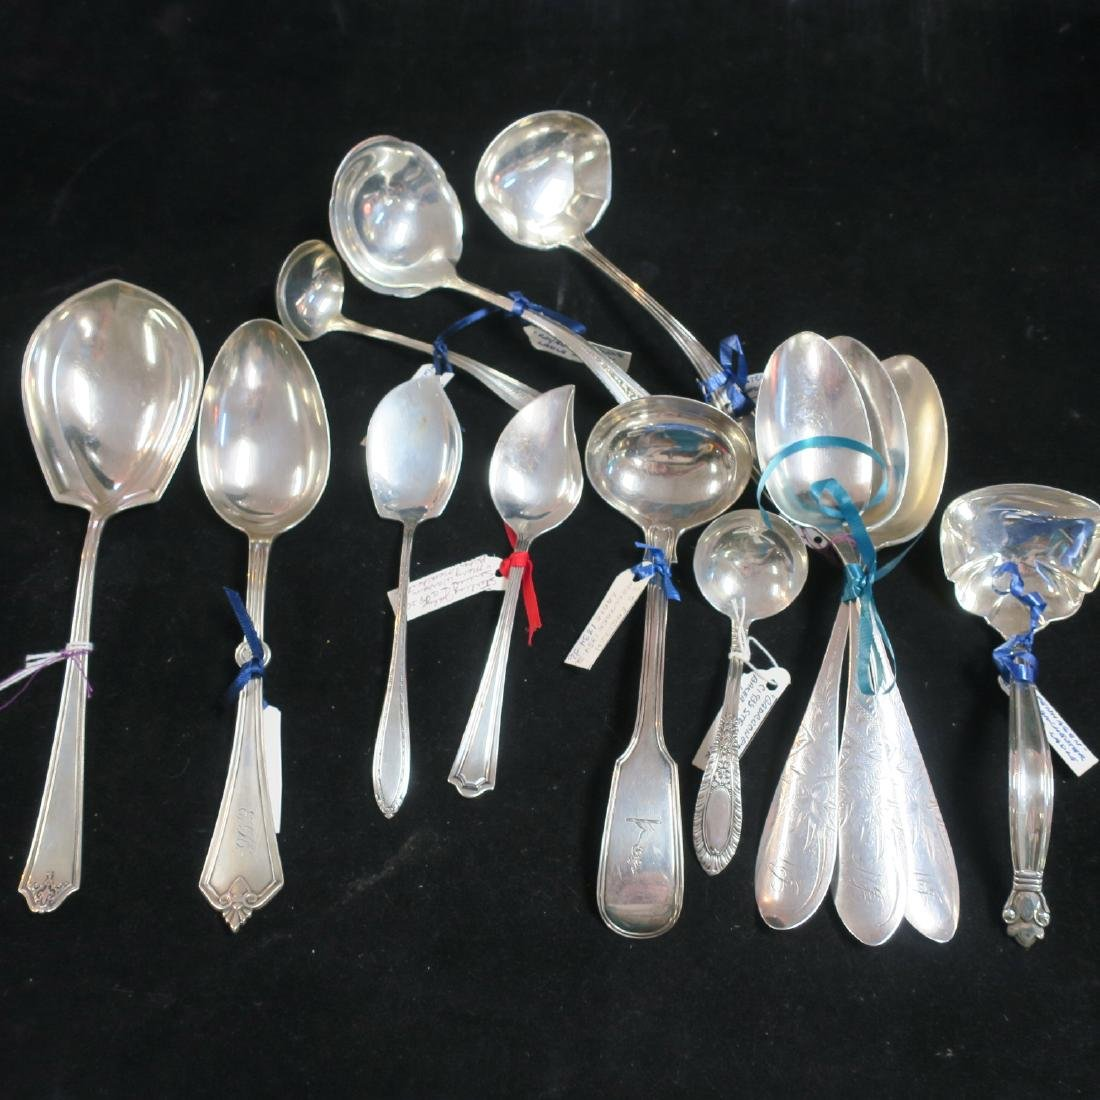 Assorted Maker Sterling Silver Ladles and Spoons: